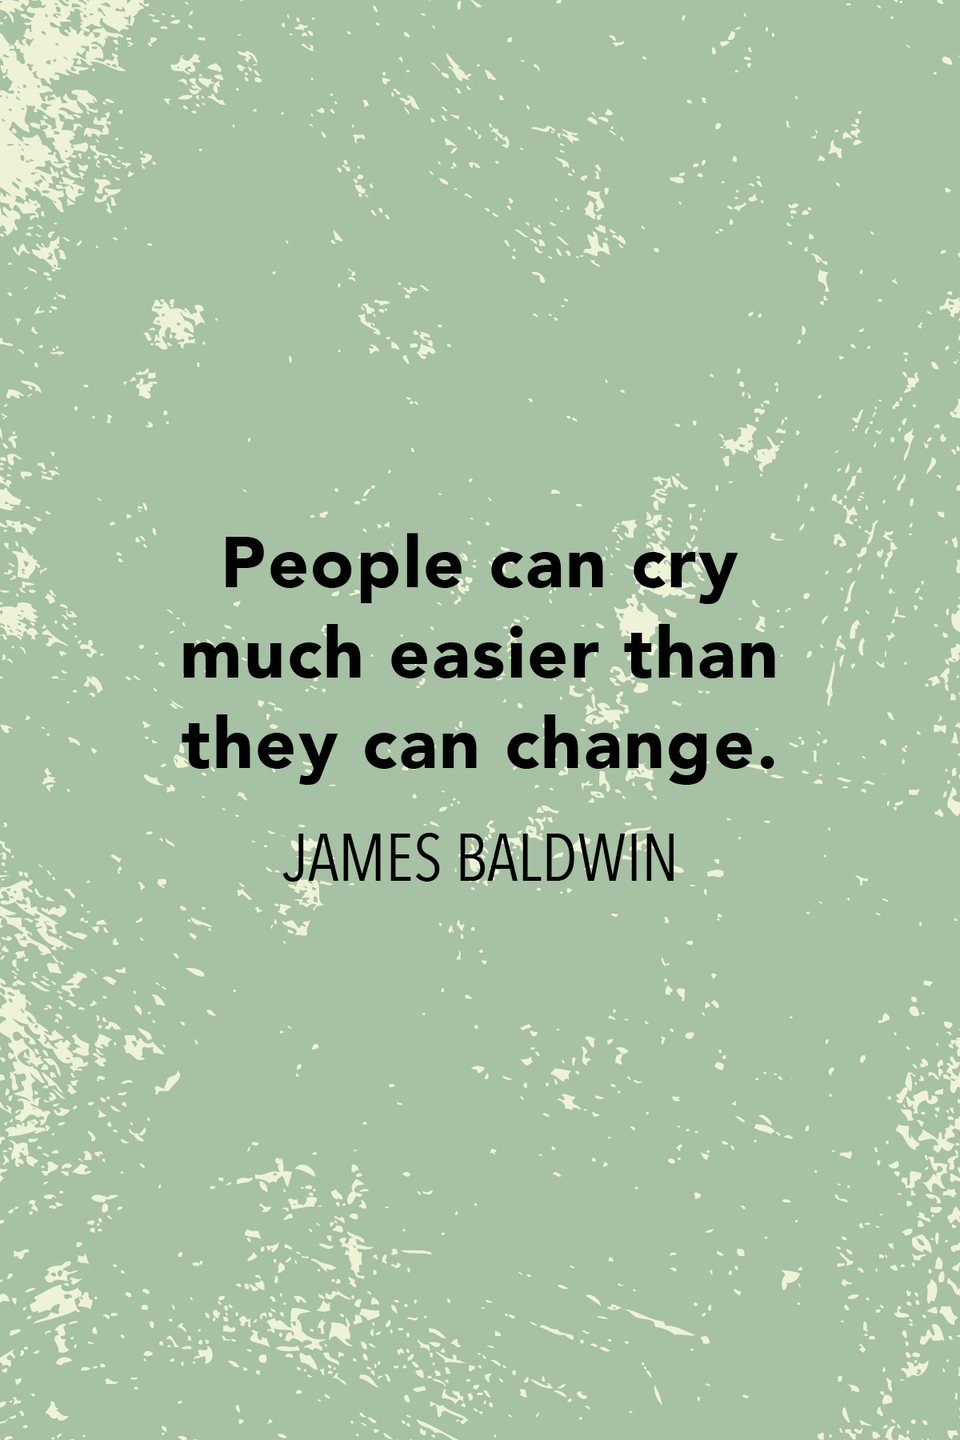 """<p>""""People can cry much easier than they can change,"""" Baldwin <a href=""""http://movies2.nytimes.com/books/98/03/29/specials/baldwin-home.html"""" rel=""""nofollow noopener"""" target=""""_blank"""" data-ylk=""""slk:told The New York Times in 1977."""" class=""""link rapid-noclick-resp"""">told <em>The New York Times </em>in 1977.</a></p>"""